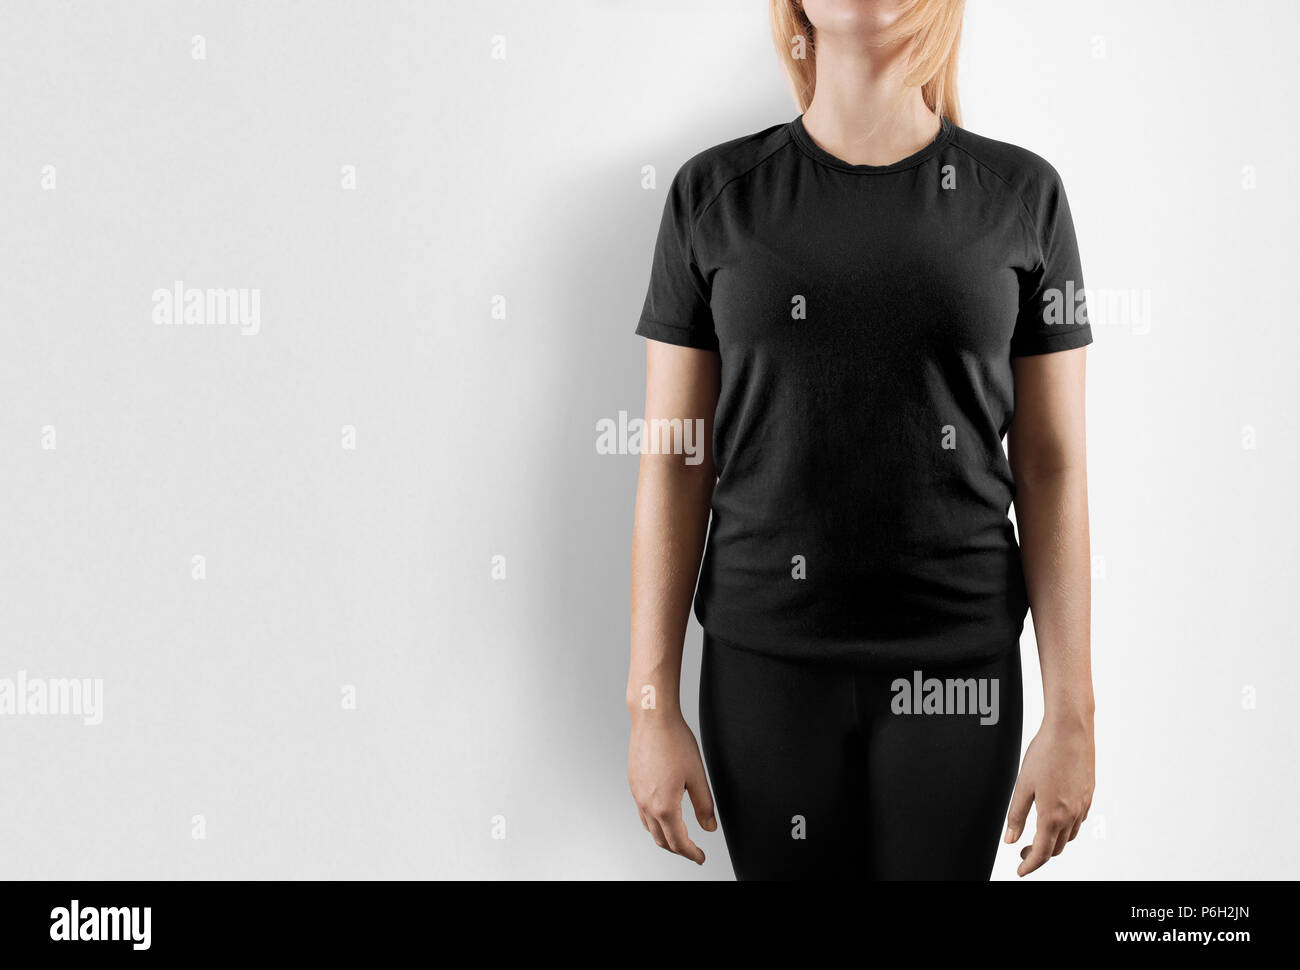 Blank black t-shirt design mockup. Women stand near wal in gray tshirt clear template front mock up. Empty female apparel uniform singlet model. Sweat tee shirt plain dress surface ready for print. - Stock Image